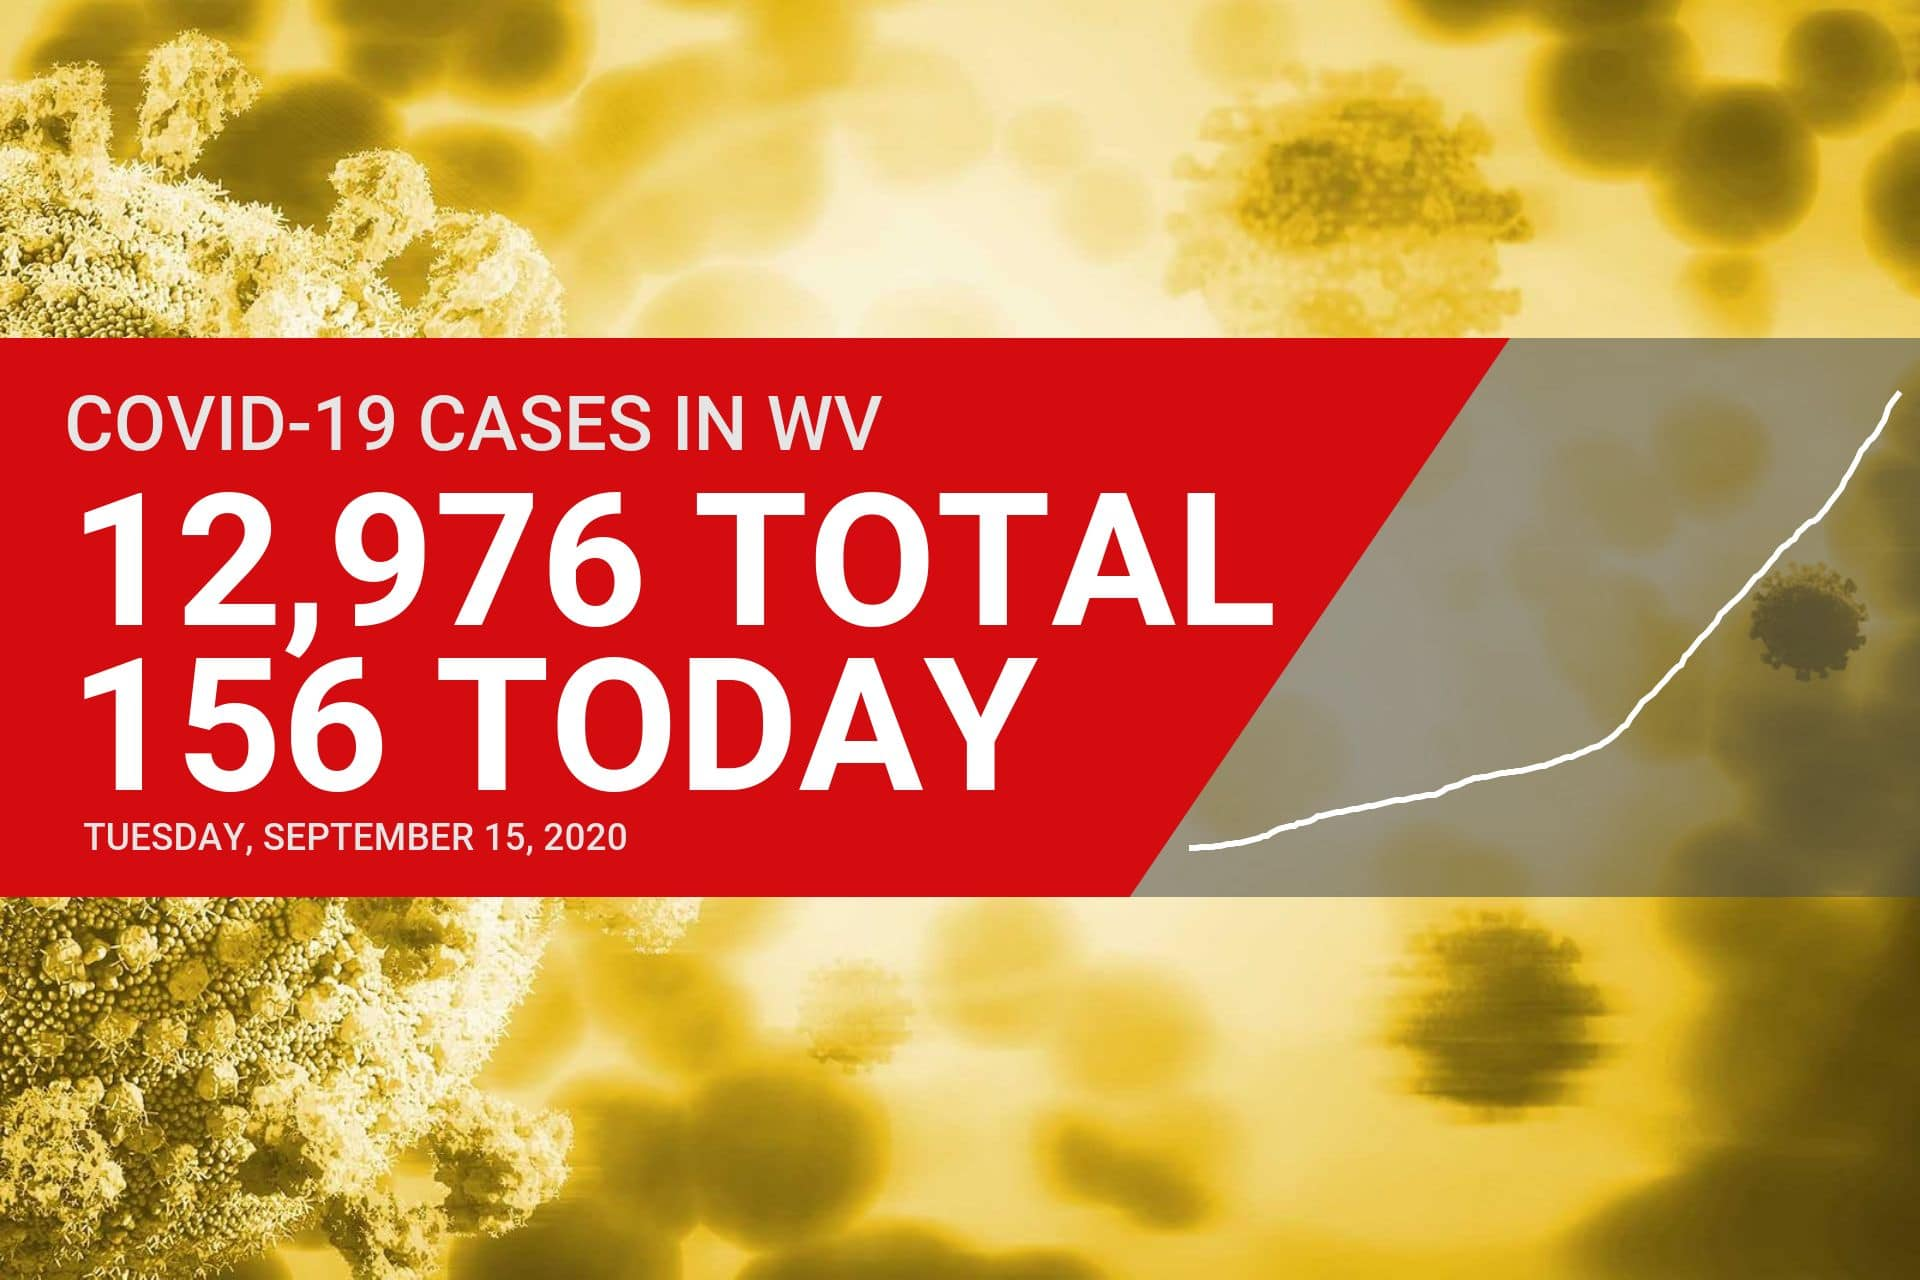 Five deaths, 156 new COVID-19 cases reported in West Virginia on Tuesday